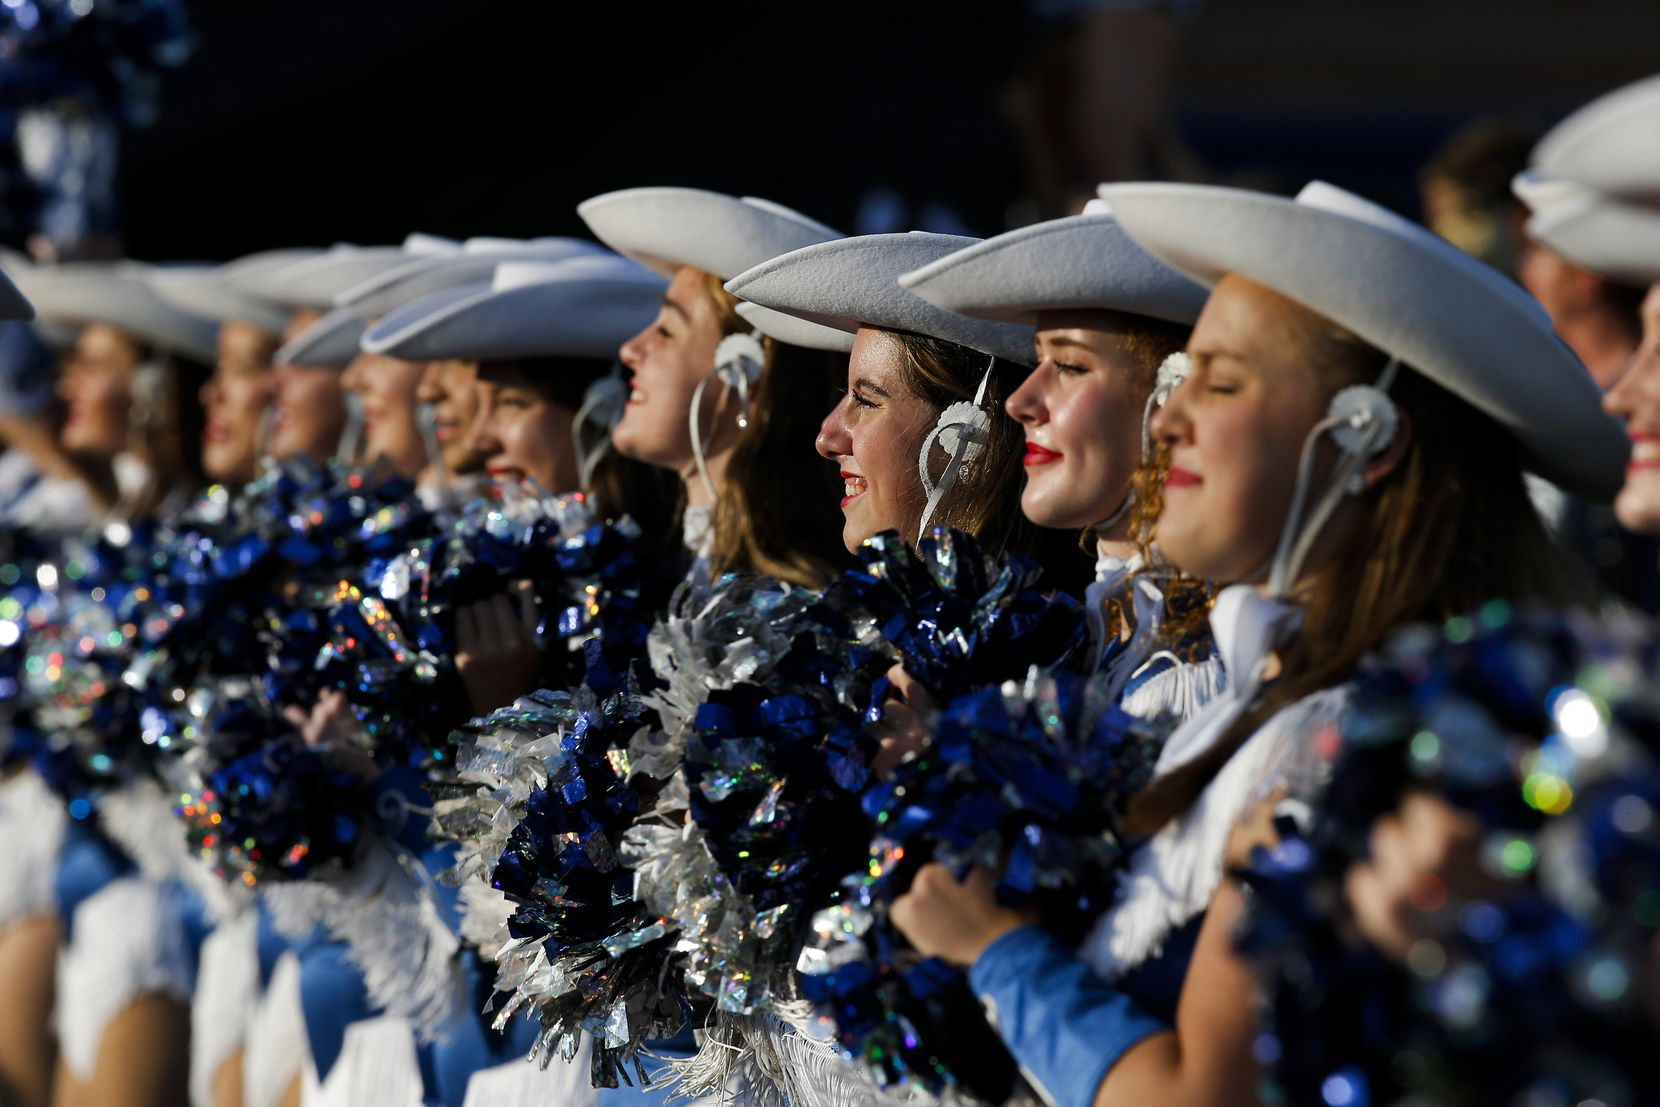 Flower Mound's Rosettes perform before the first half of a high school football game against Mesquite at Flower Mound High School, Friday, August 27, 2021. (Brandon Wade/Special Contributor)